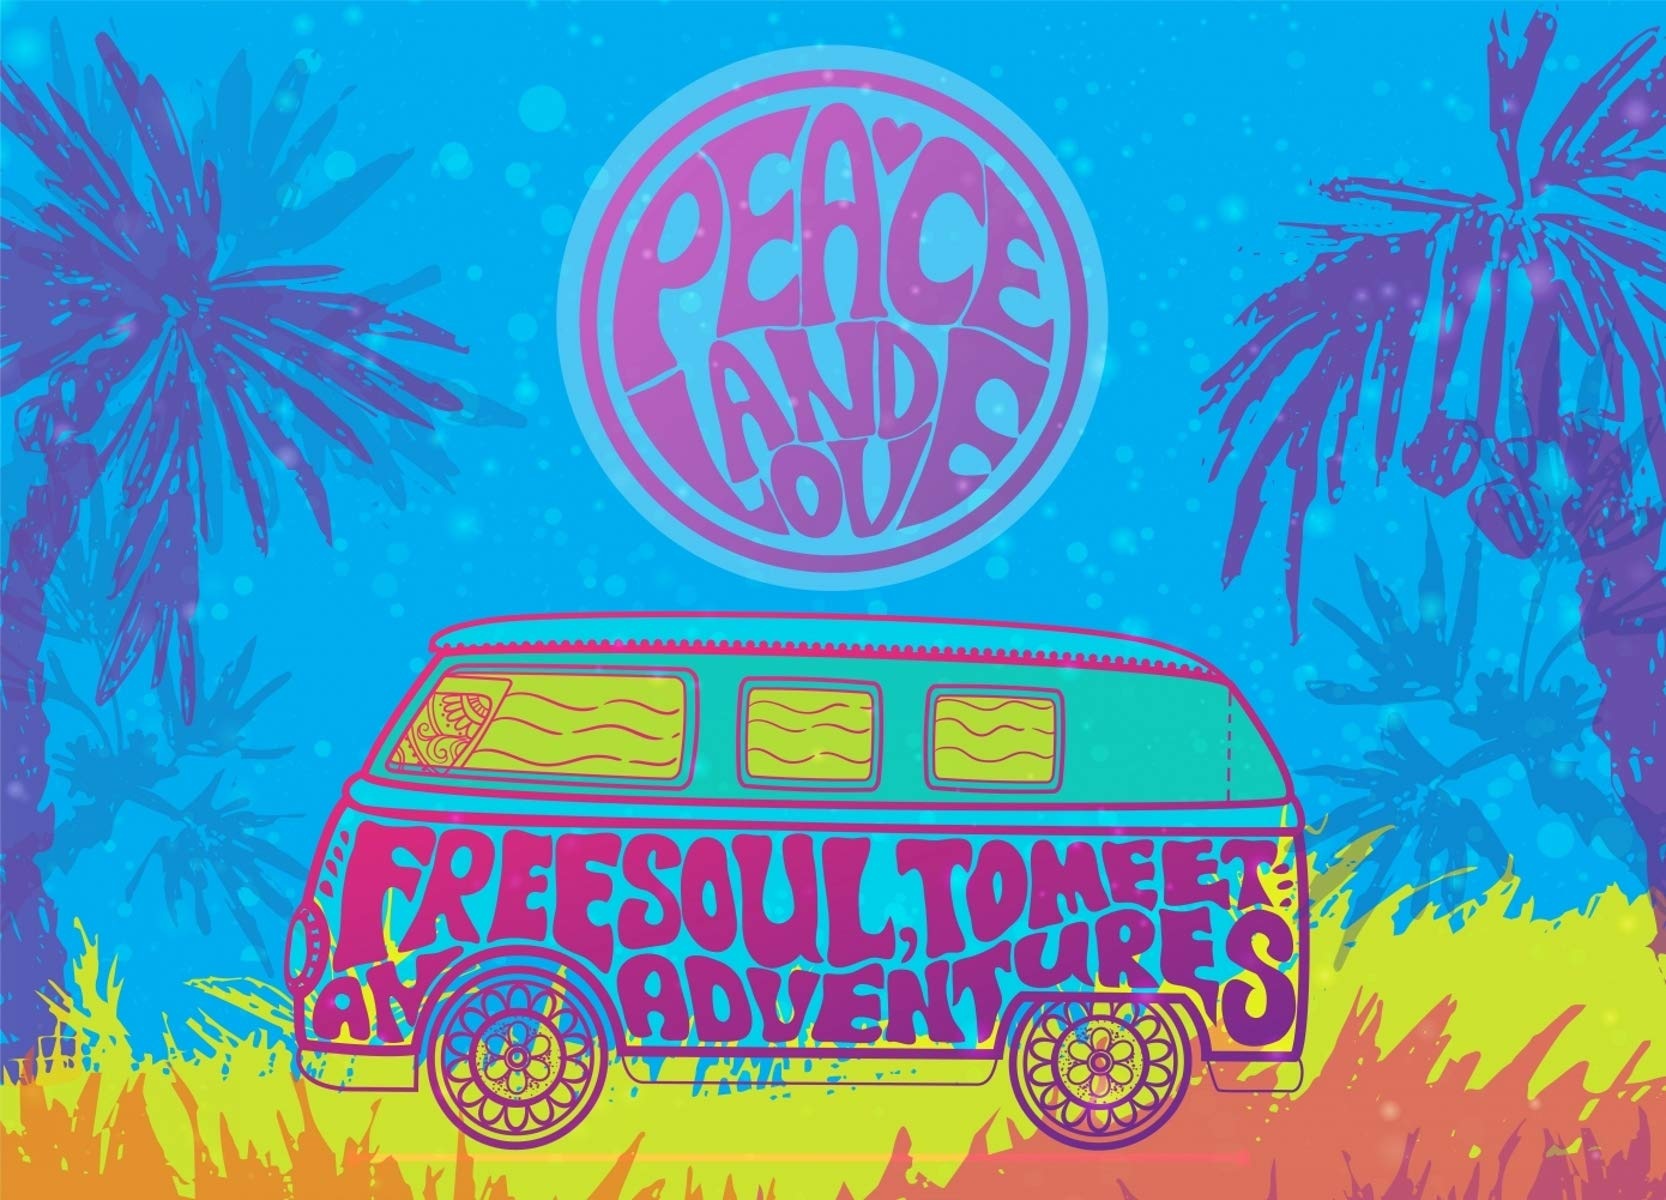 ERIC 8x6ft Retro 1960s 70s 80s Hippie Vintage Car Minivan with Tropical Palm Hand-Written Fonts Graffiti Themed Party Decorations Photo Booth Studio Props